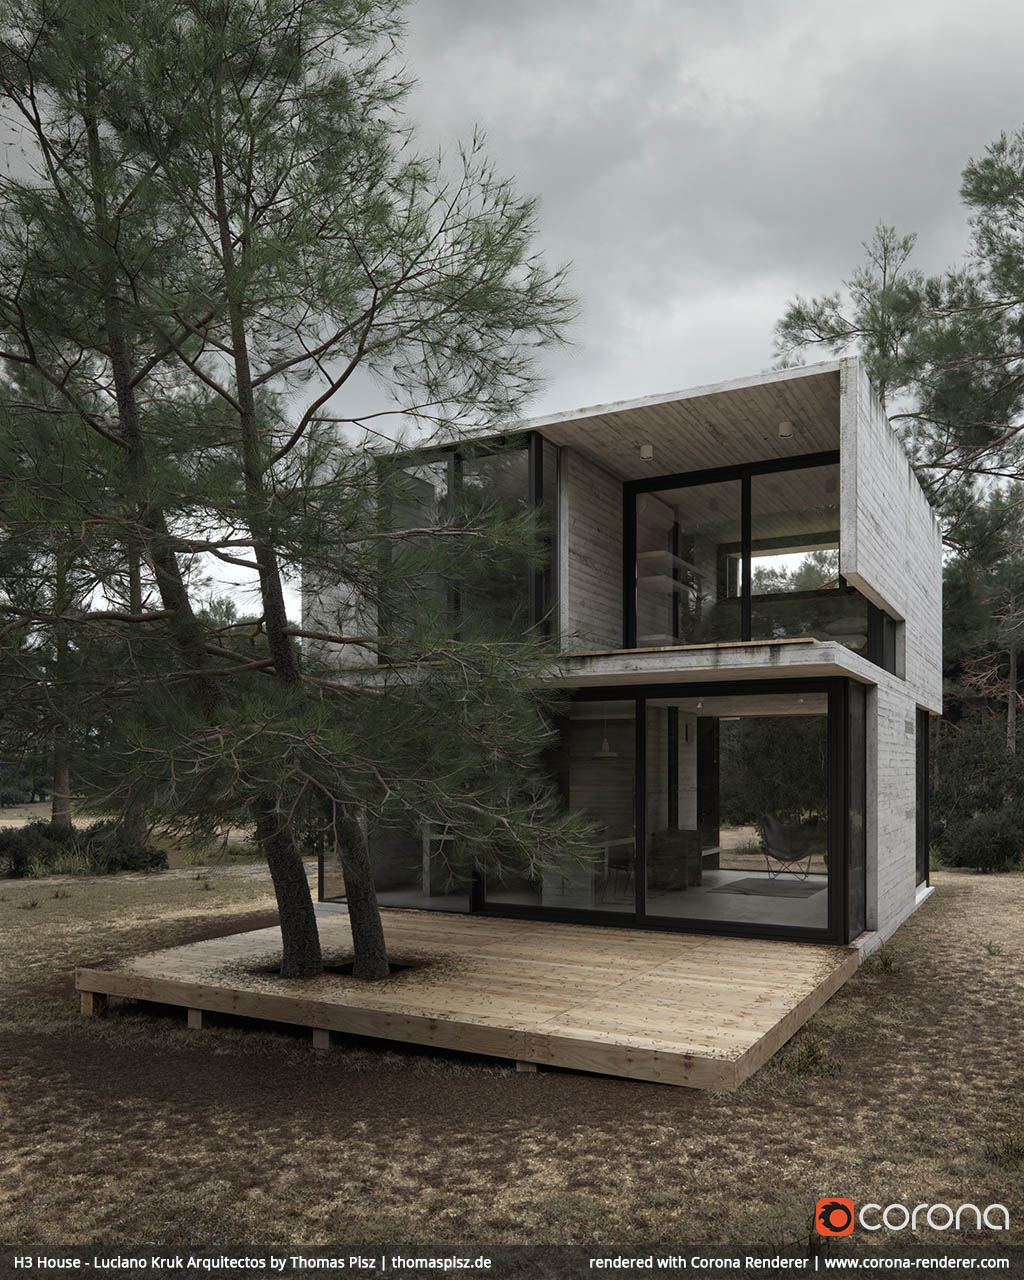 H3 House - Luciano Kruk arquitectos 01 by Thomas Pisz